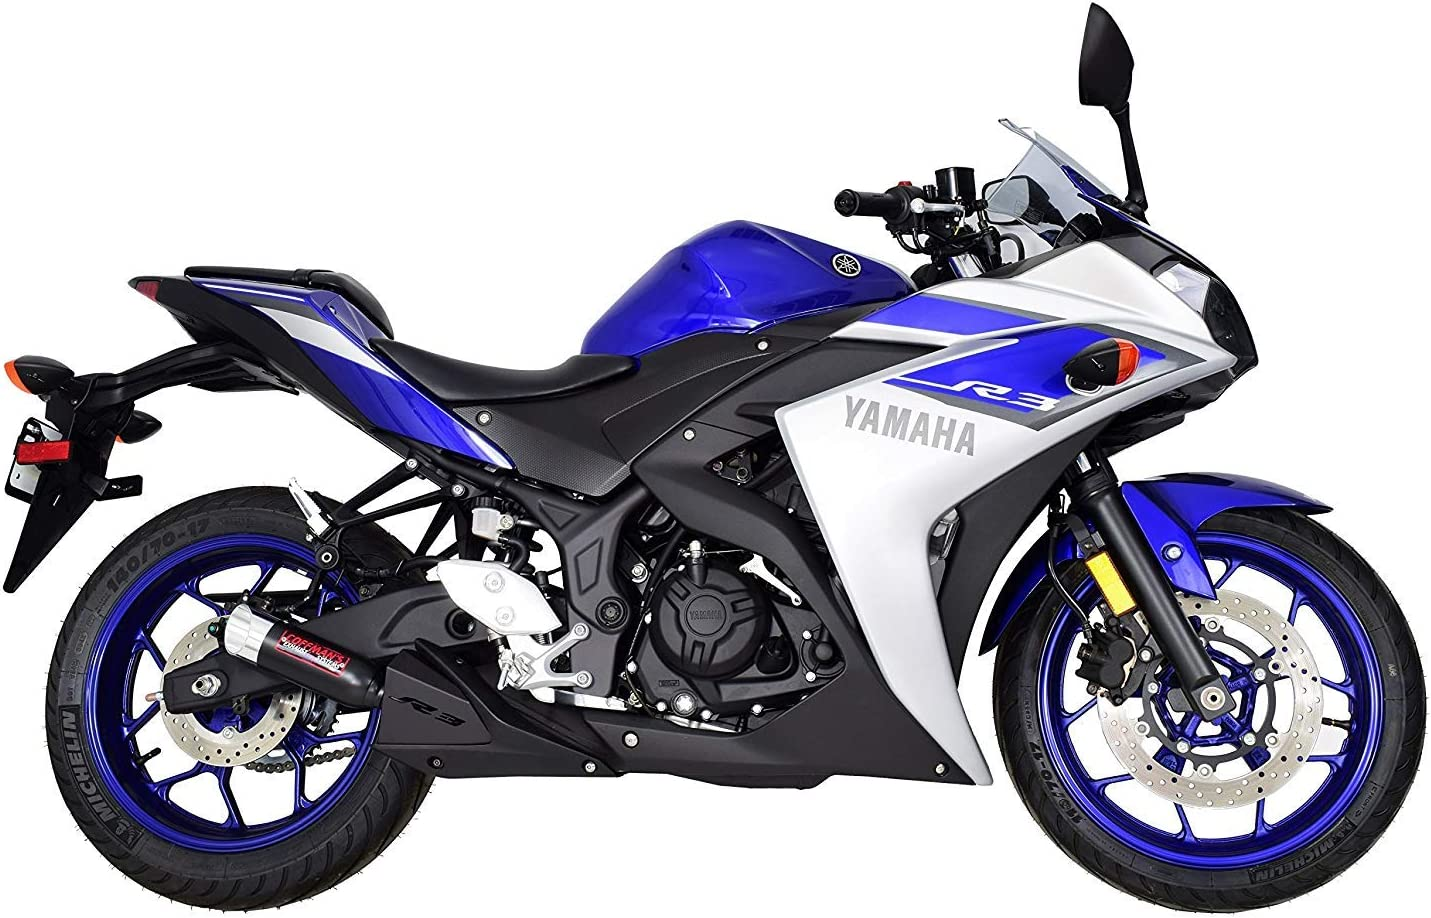 Coffmans Shorty Exhaust with Polished Tip and Exhaust Guard 2015-2019 Yamaha R3 YZF-R3